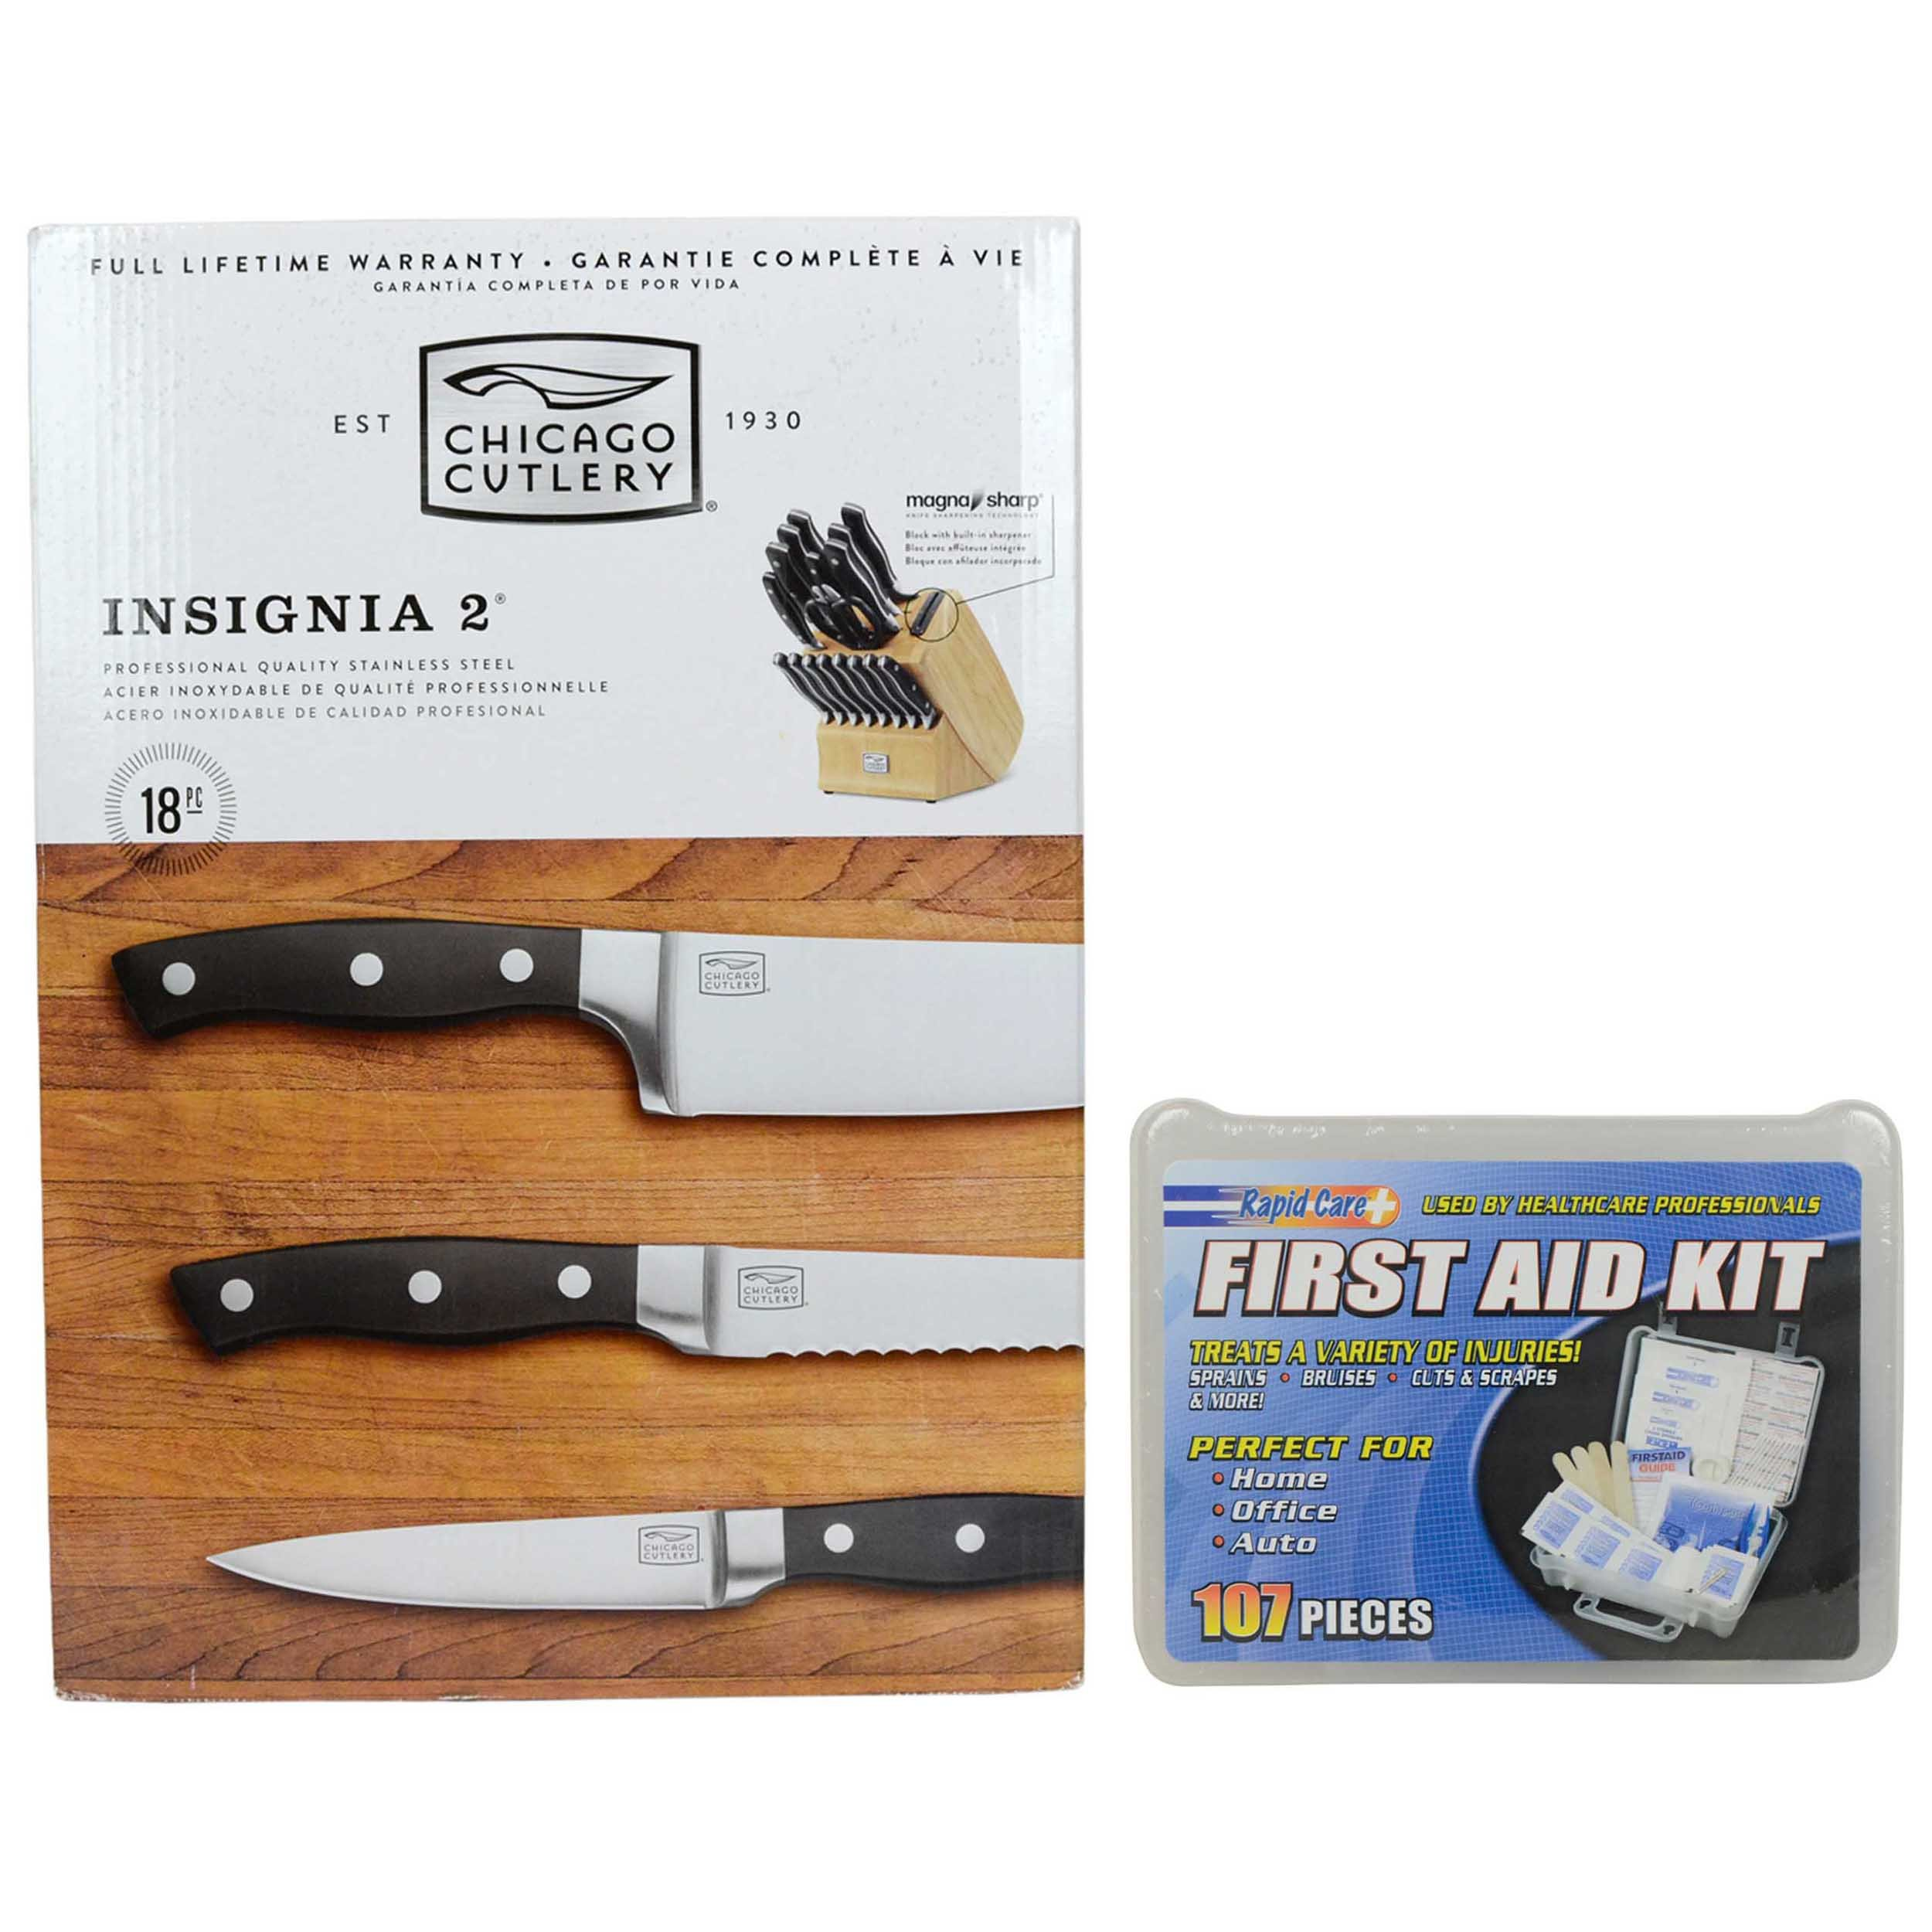 Chicago Cutlery 18pc Insignia2 Knife Block Set & (1) Rapid Care 107pc First Aid Kit